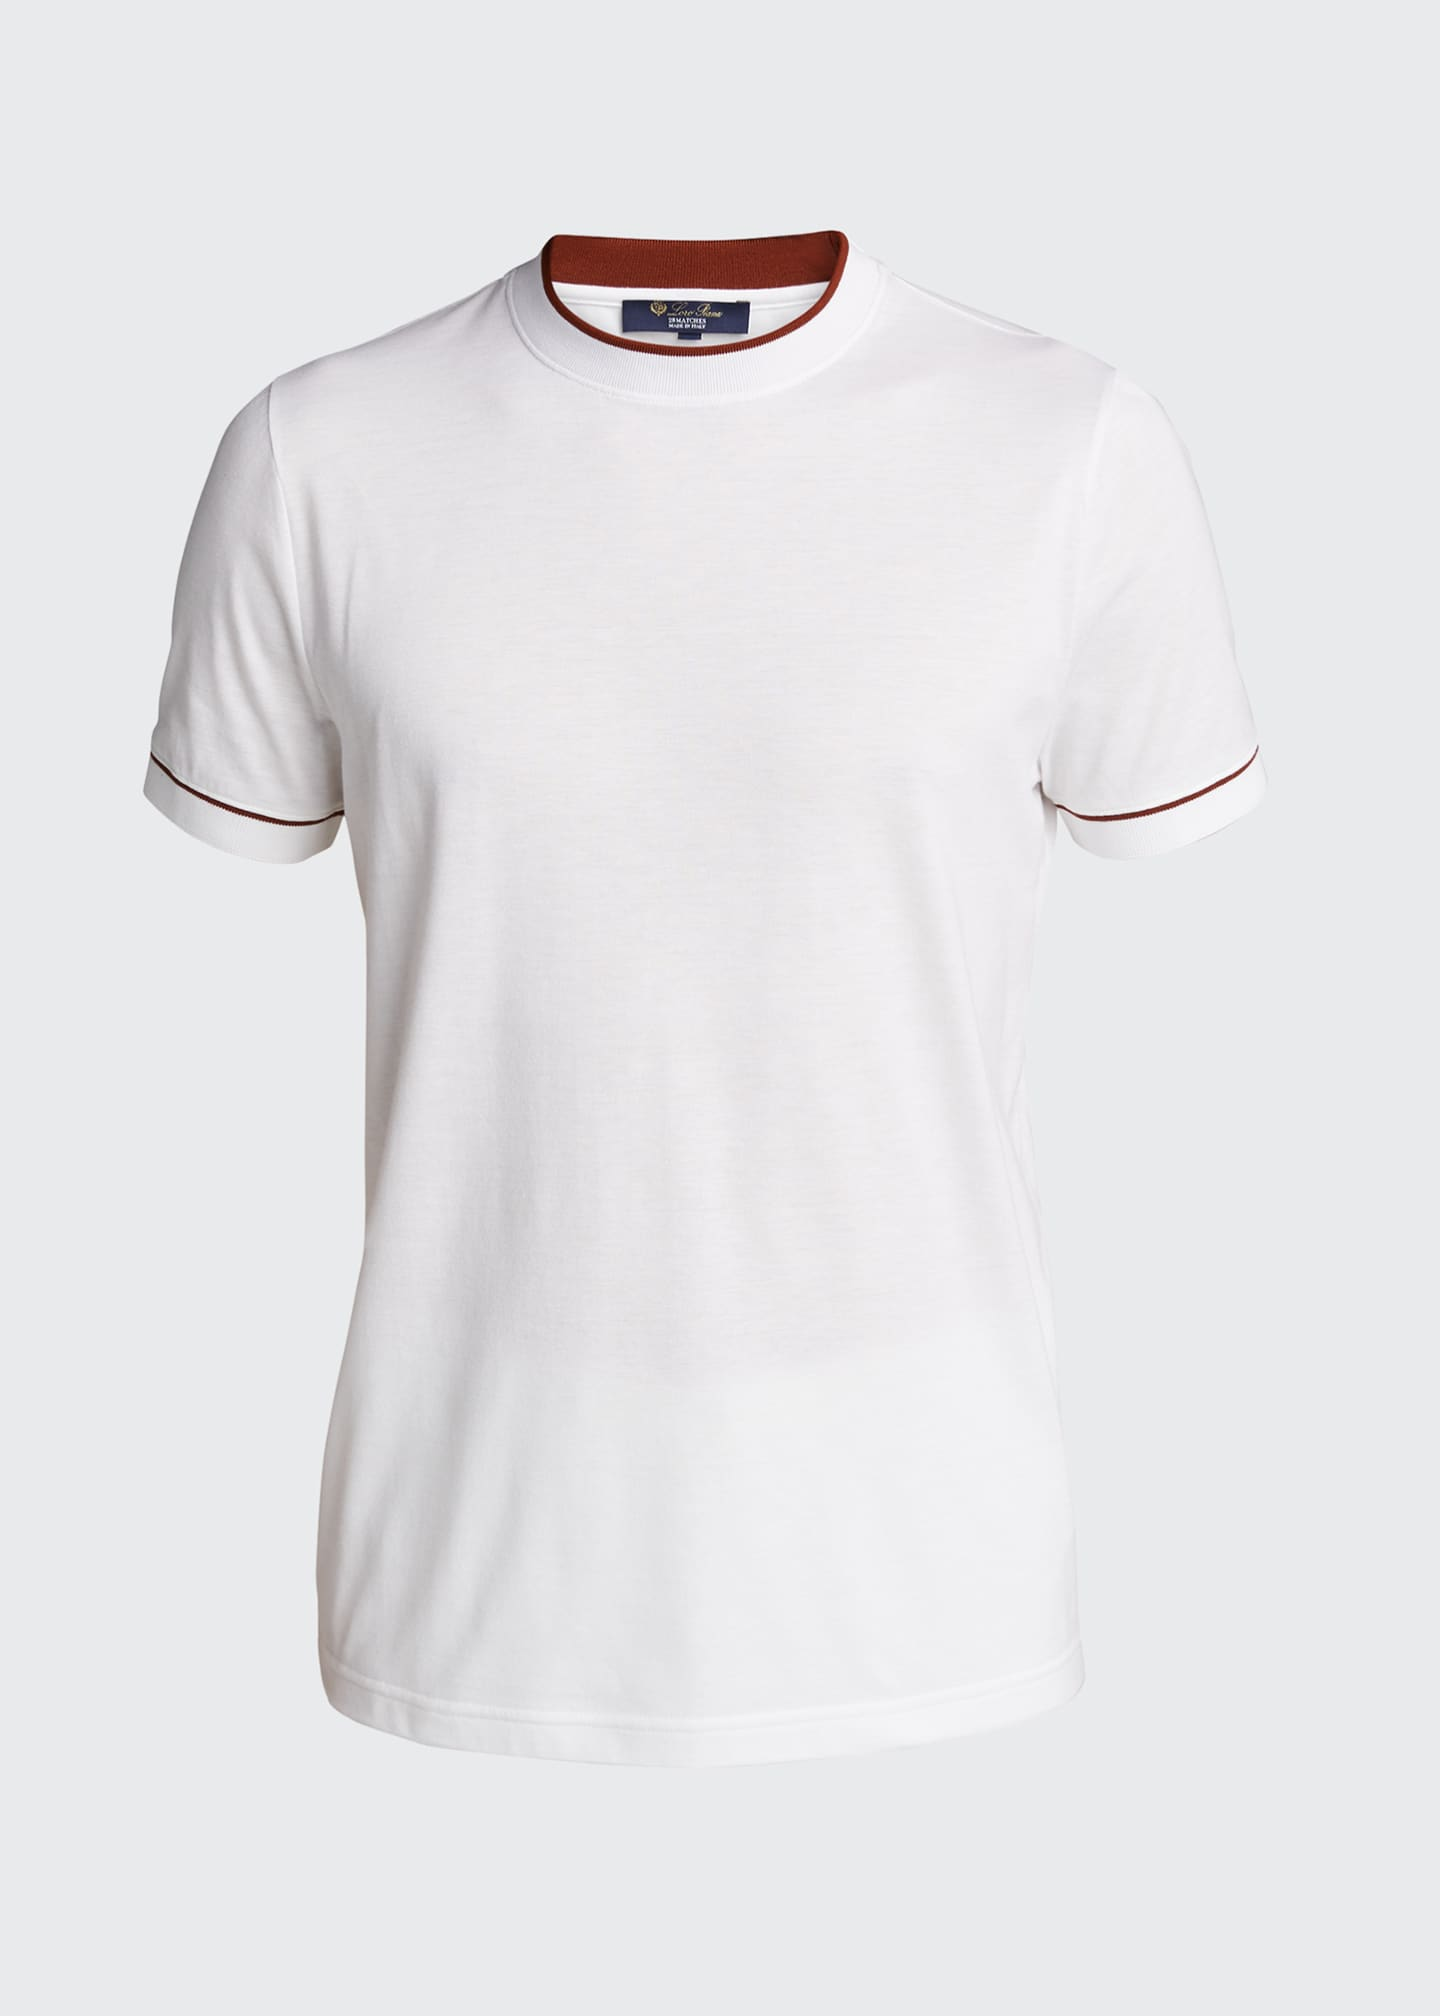 Image 5 of 5: Men's Crewneck Short-Sleeve Golf T-Shirt